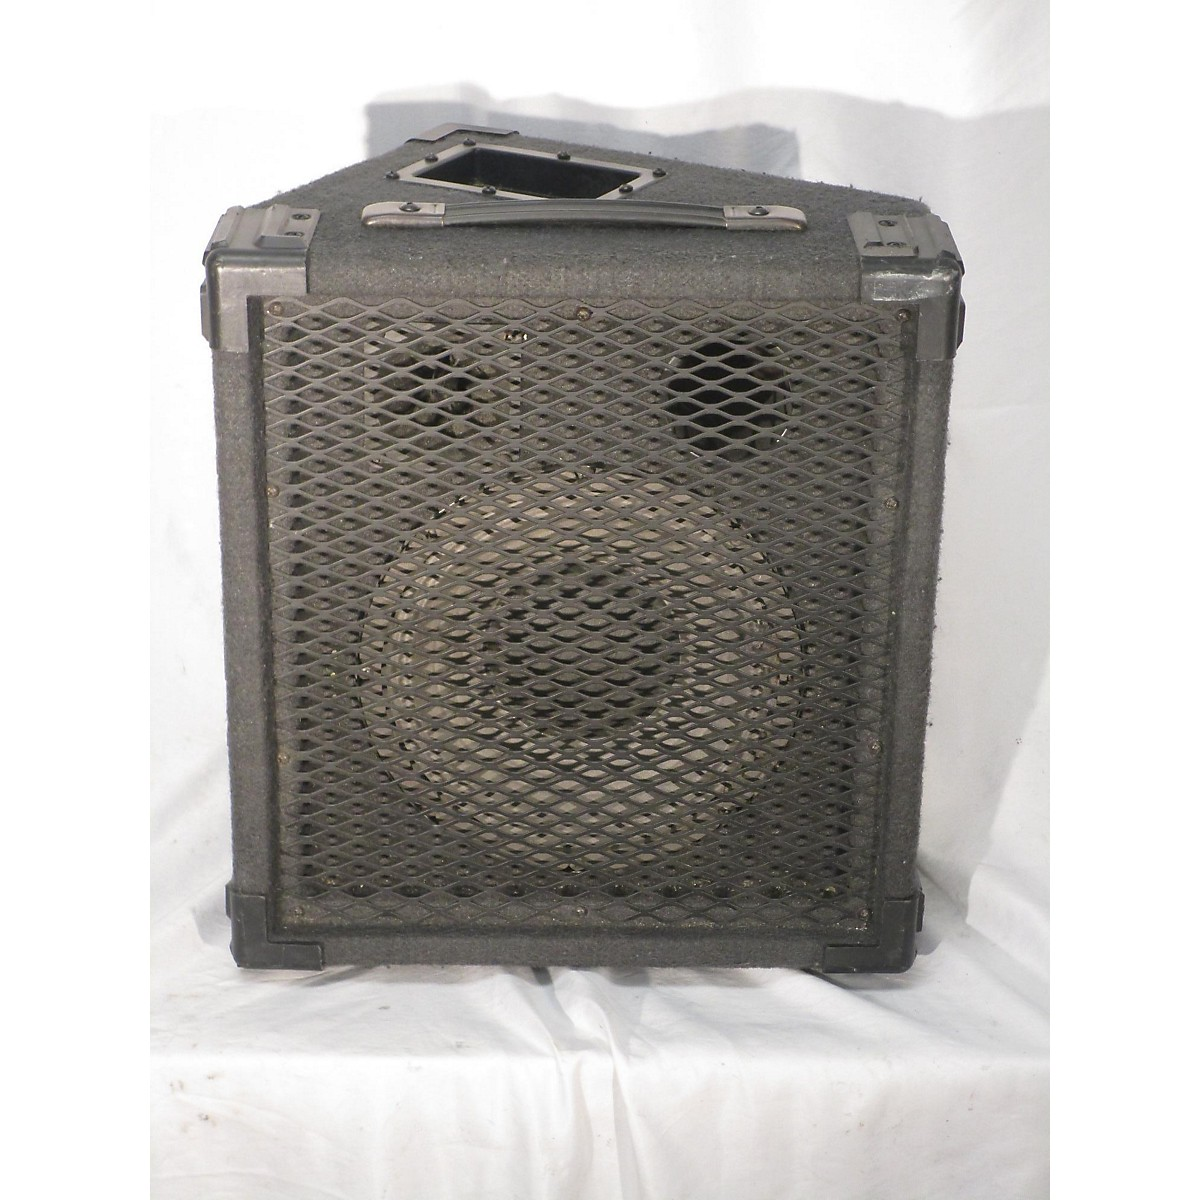 SoundTech STS Unpowered Monitor